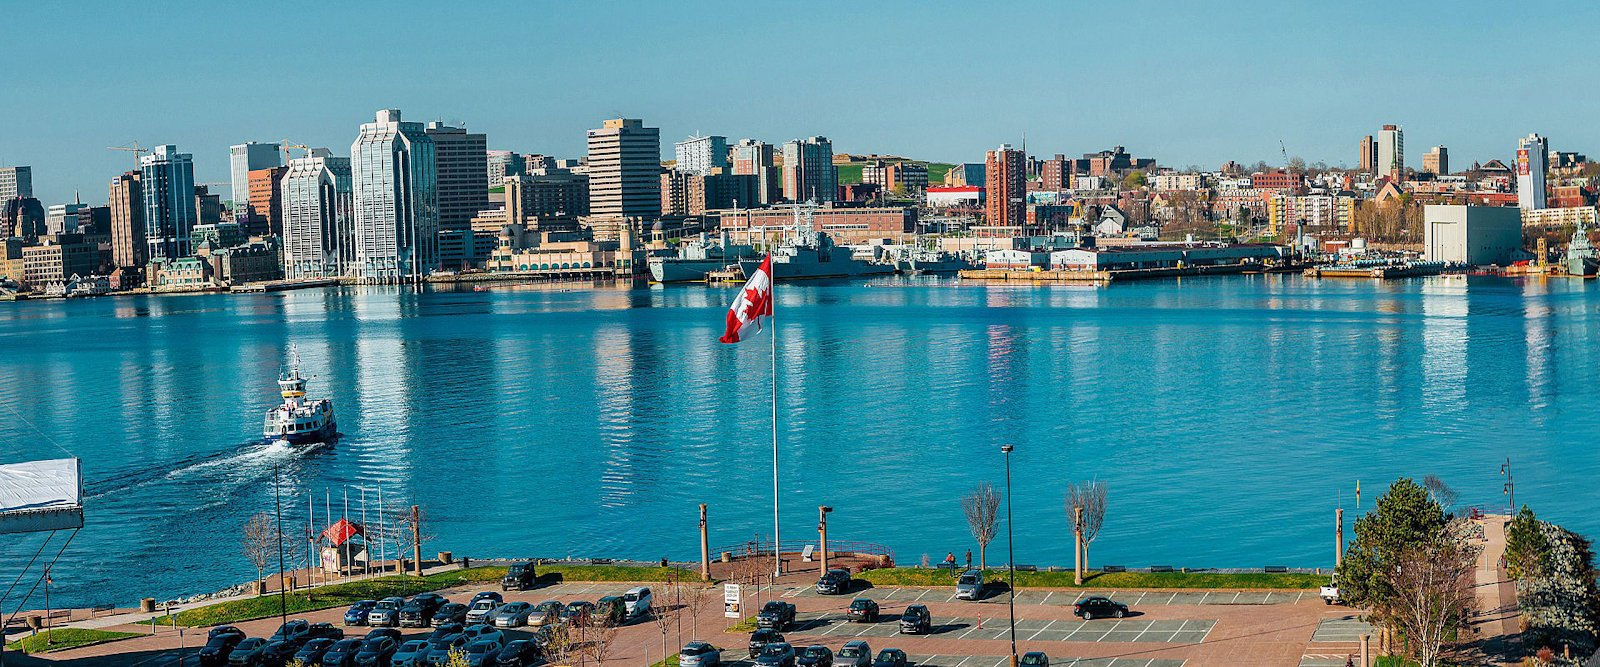 (Opened On April 28) New Applications For Express Entry In Nova Scotia, Canada